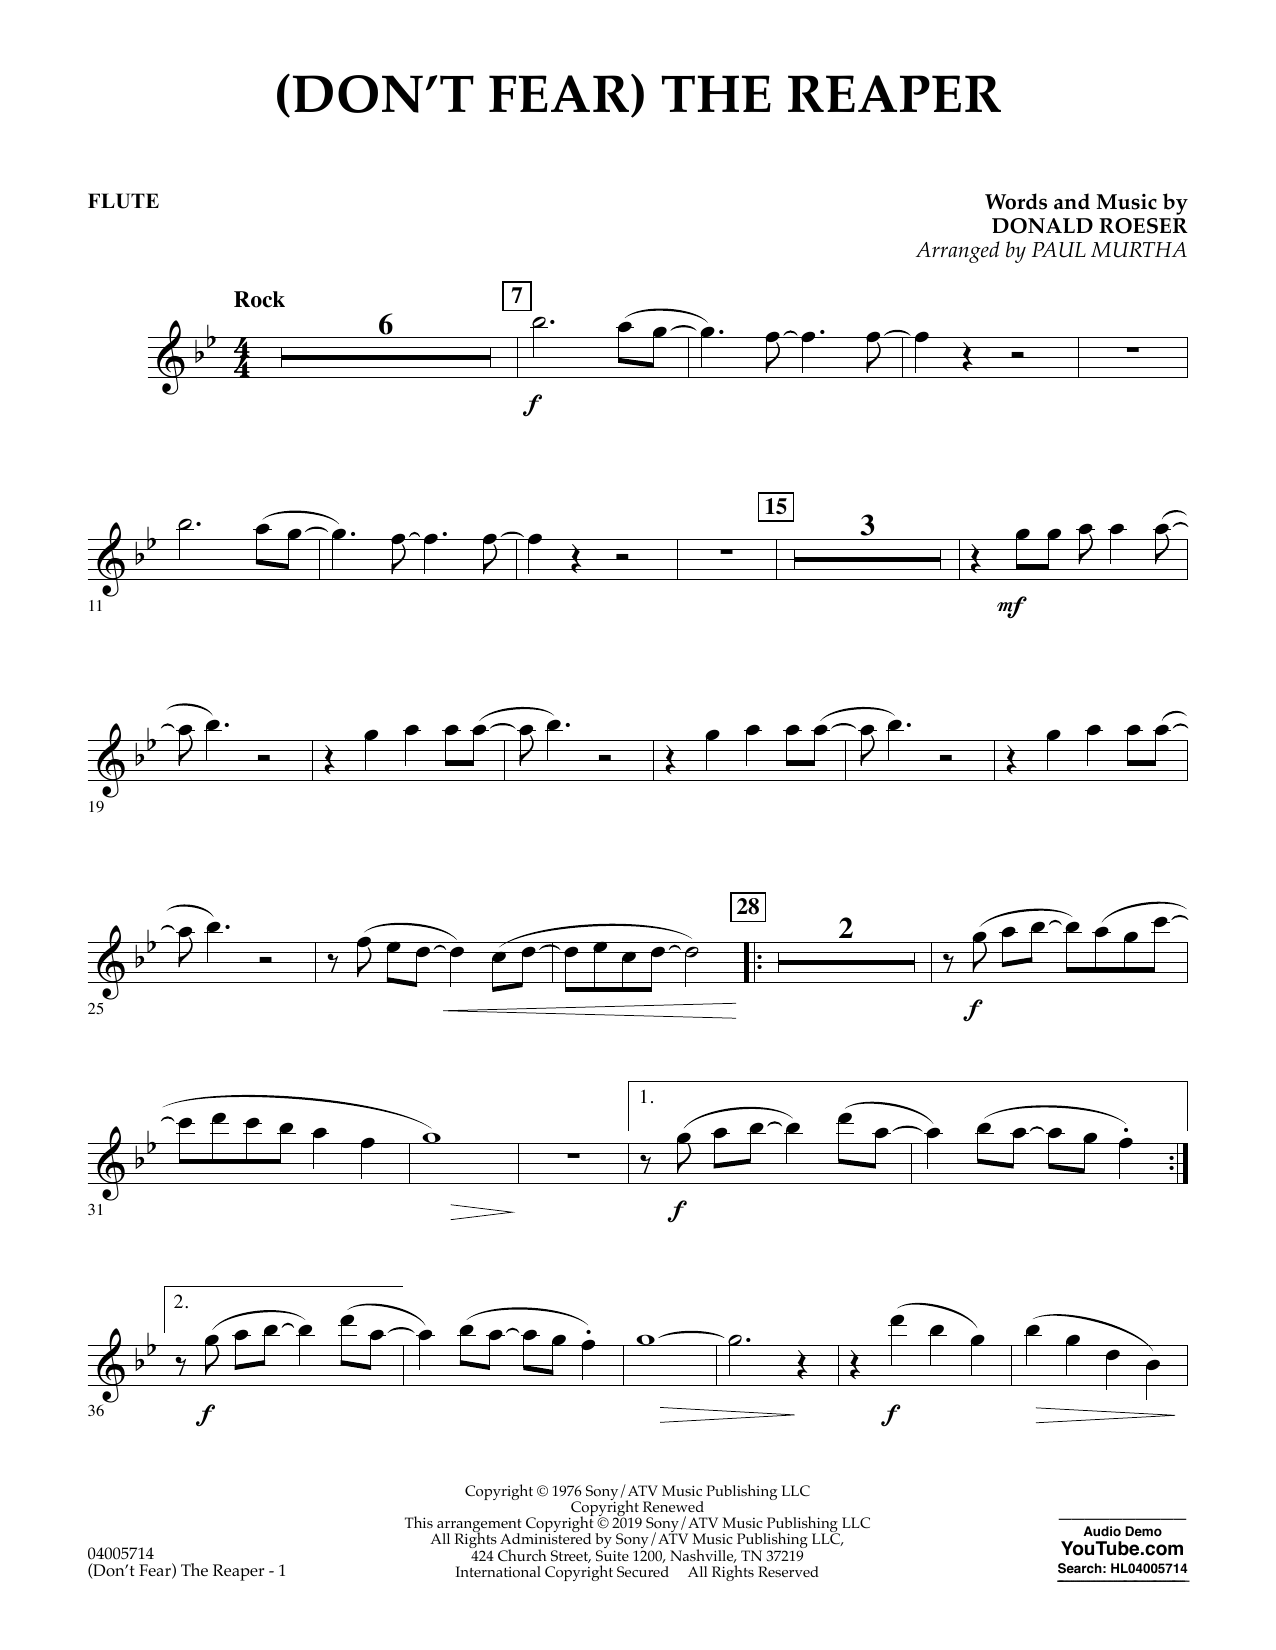 Blue Oyster Cult (Don't Fear) The Reaper (arr. Paul Murtha) - Flute sheet music preview music notes and score for Jazz Ensemble including 2 page(s)